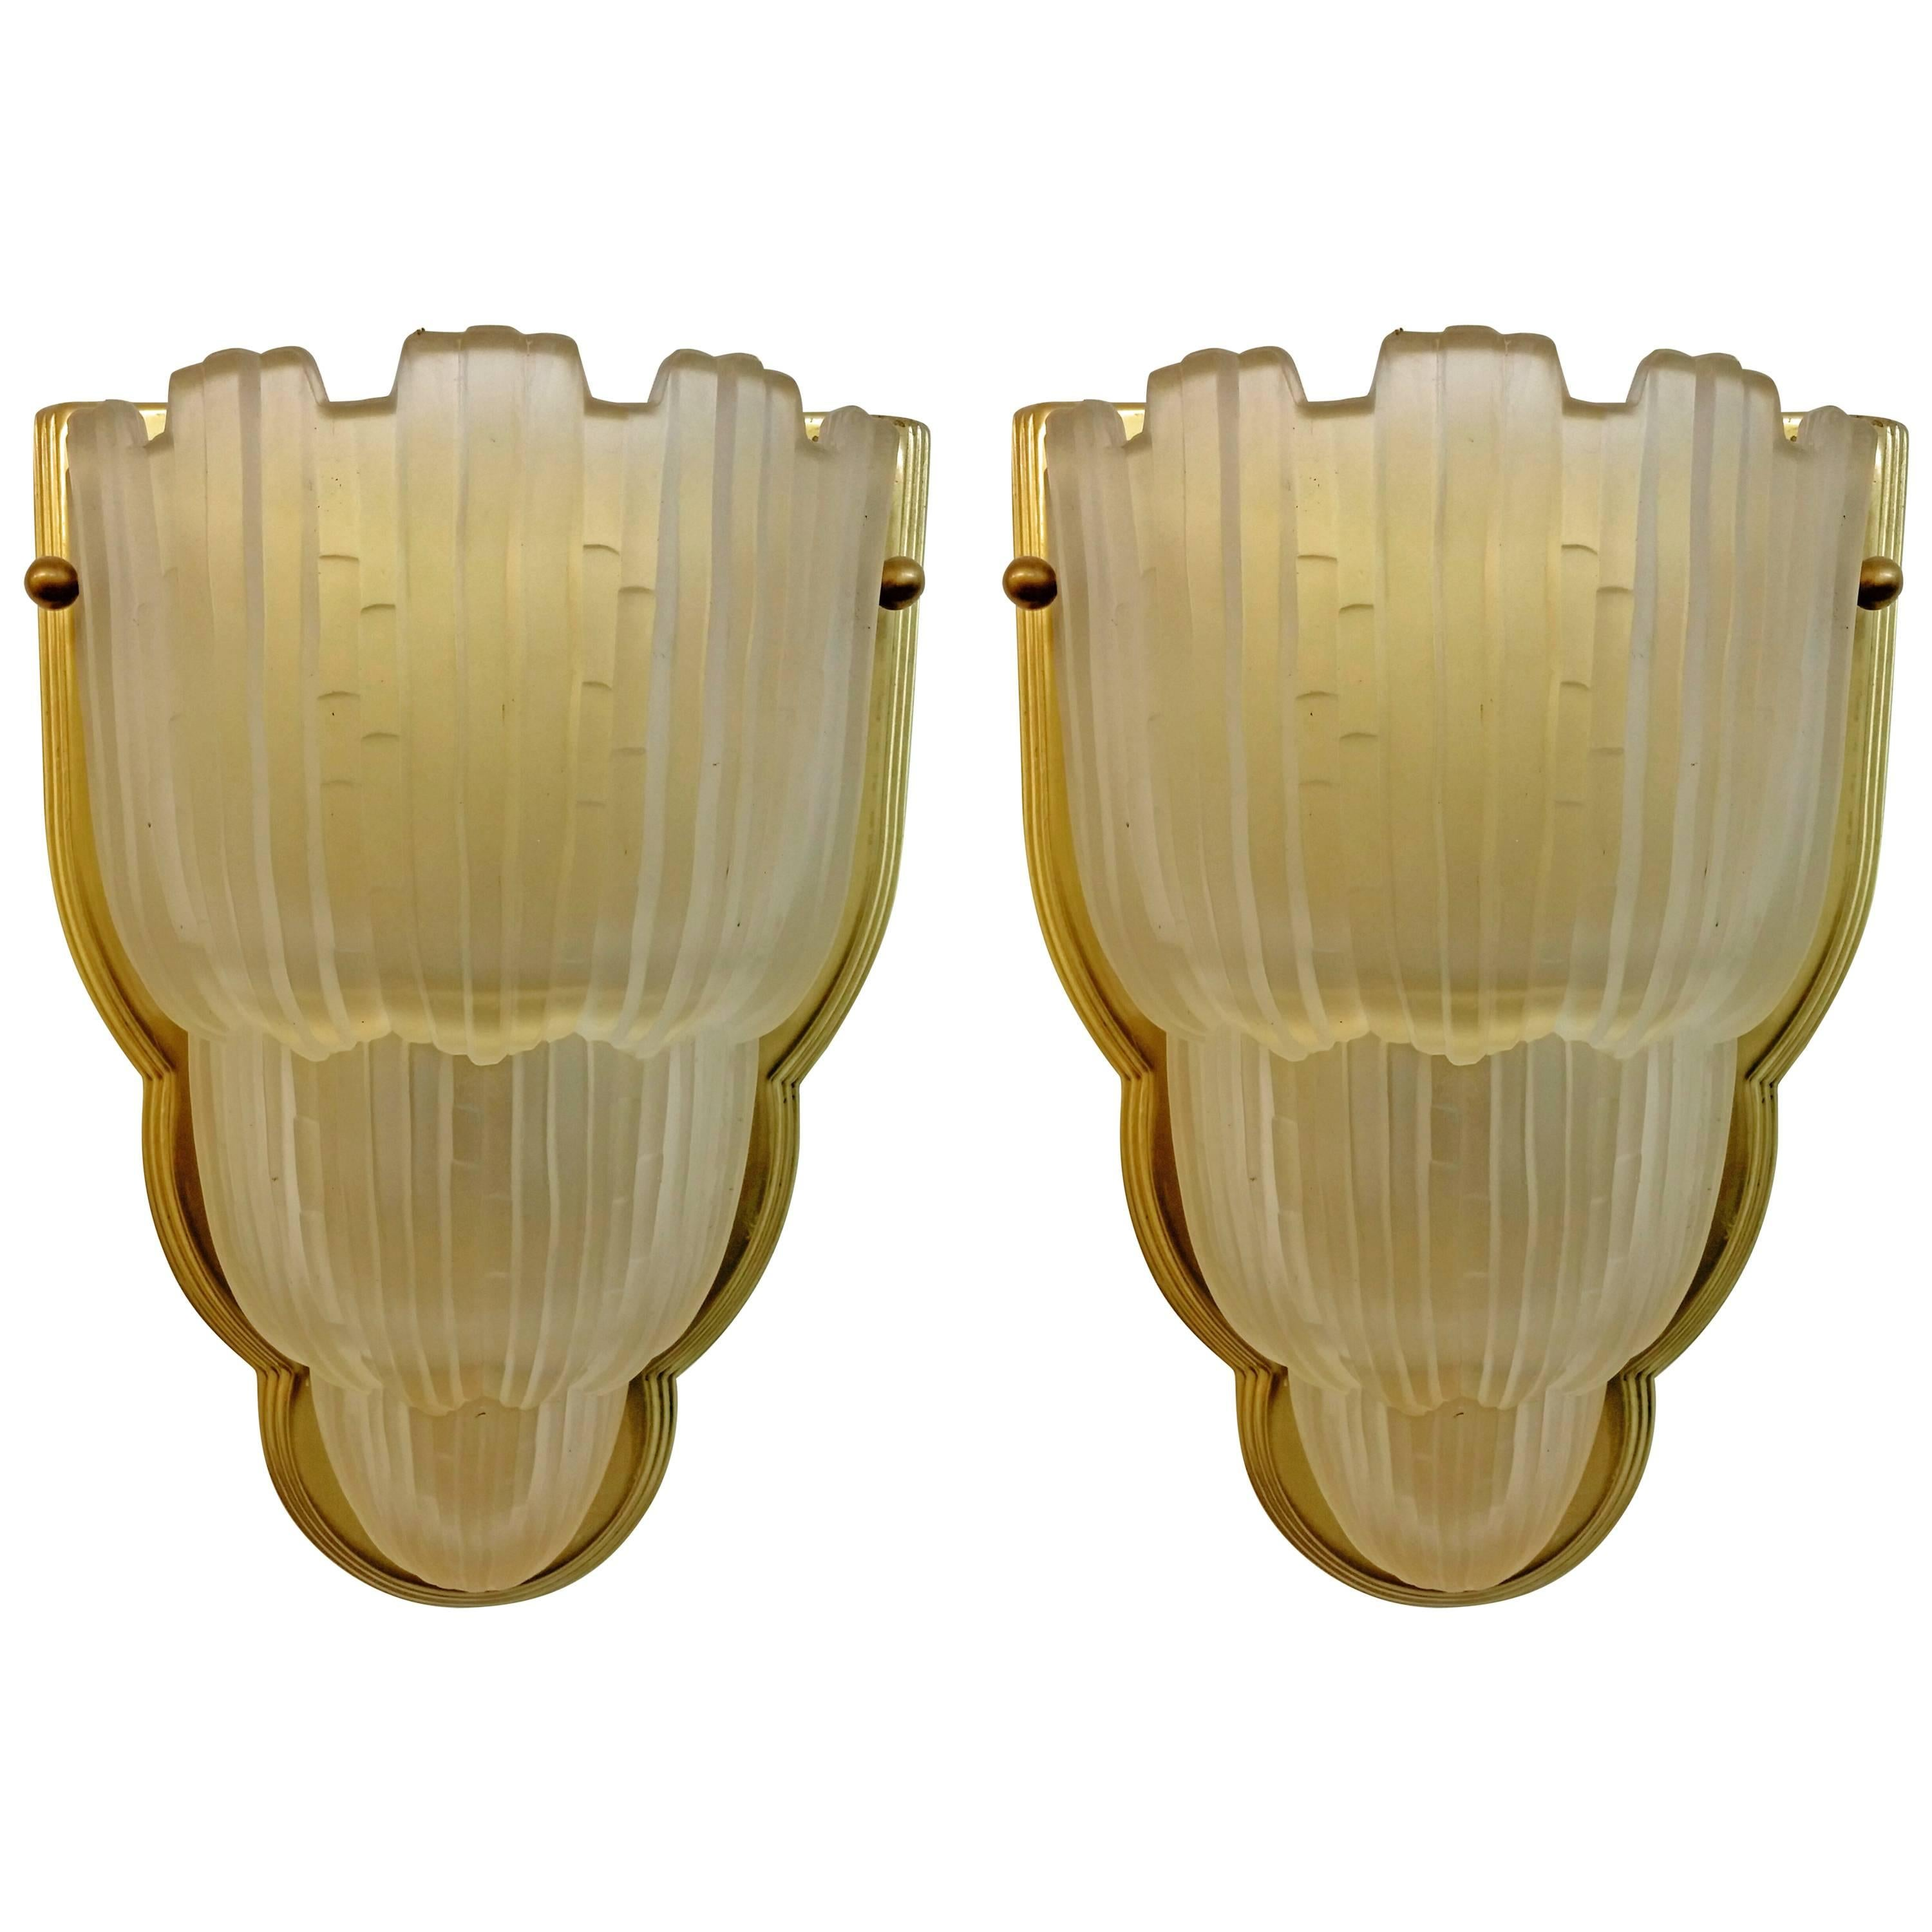 Pair of French Art Deco Wall Sconces by Sabino